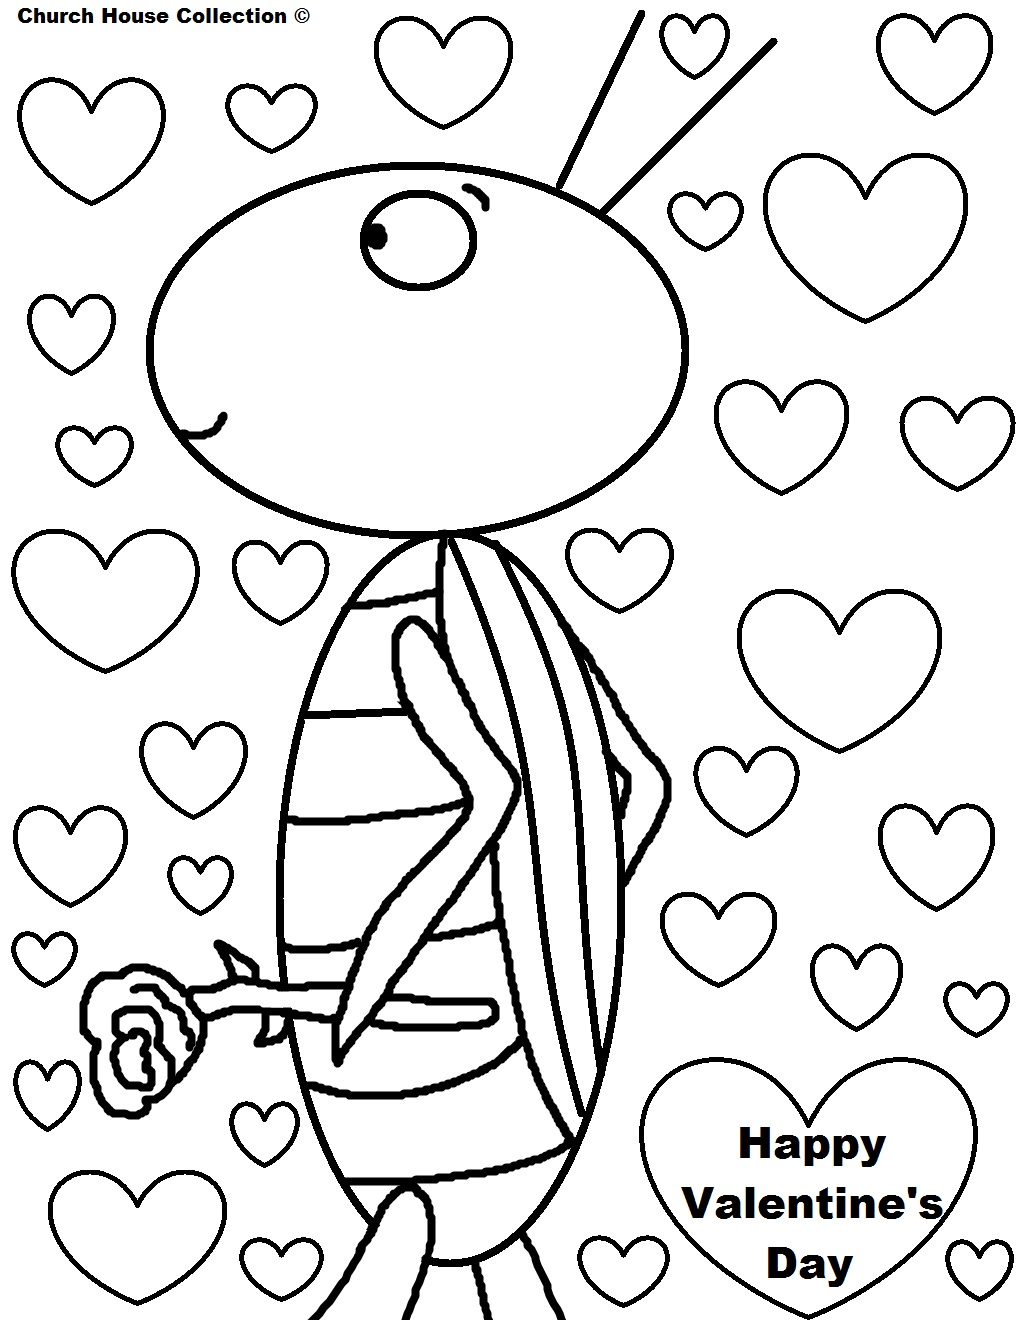 Church house collection blog valentine 39 s day coloring for Coloring page valentine